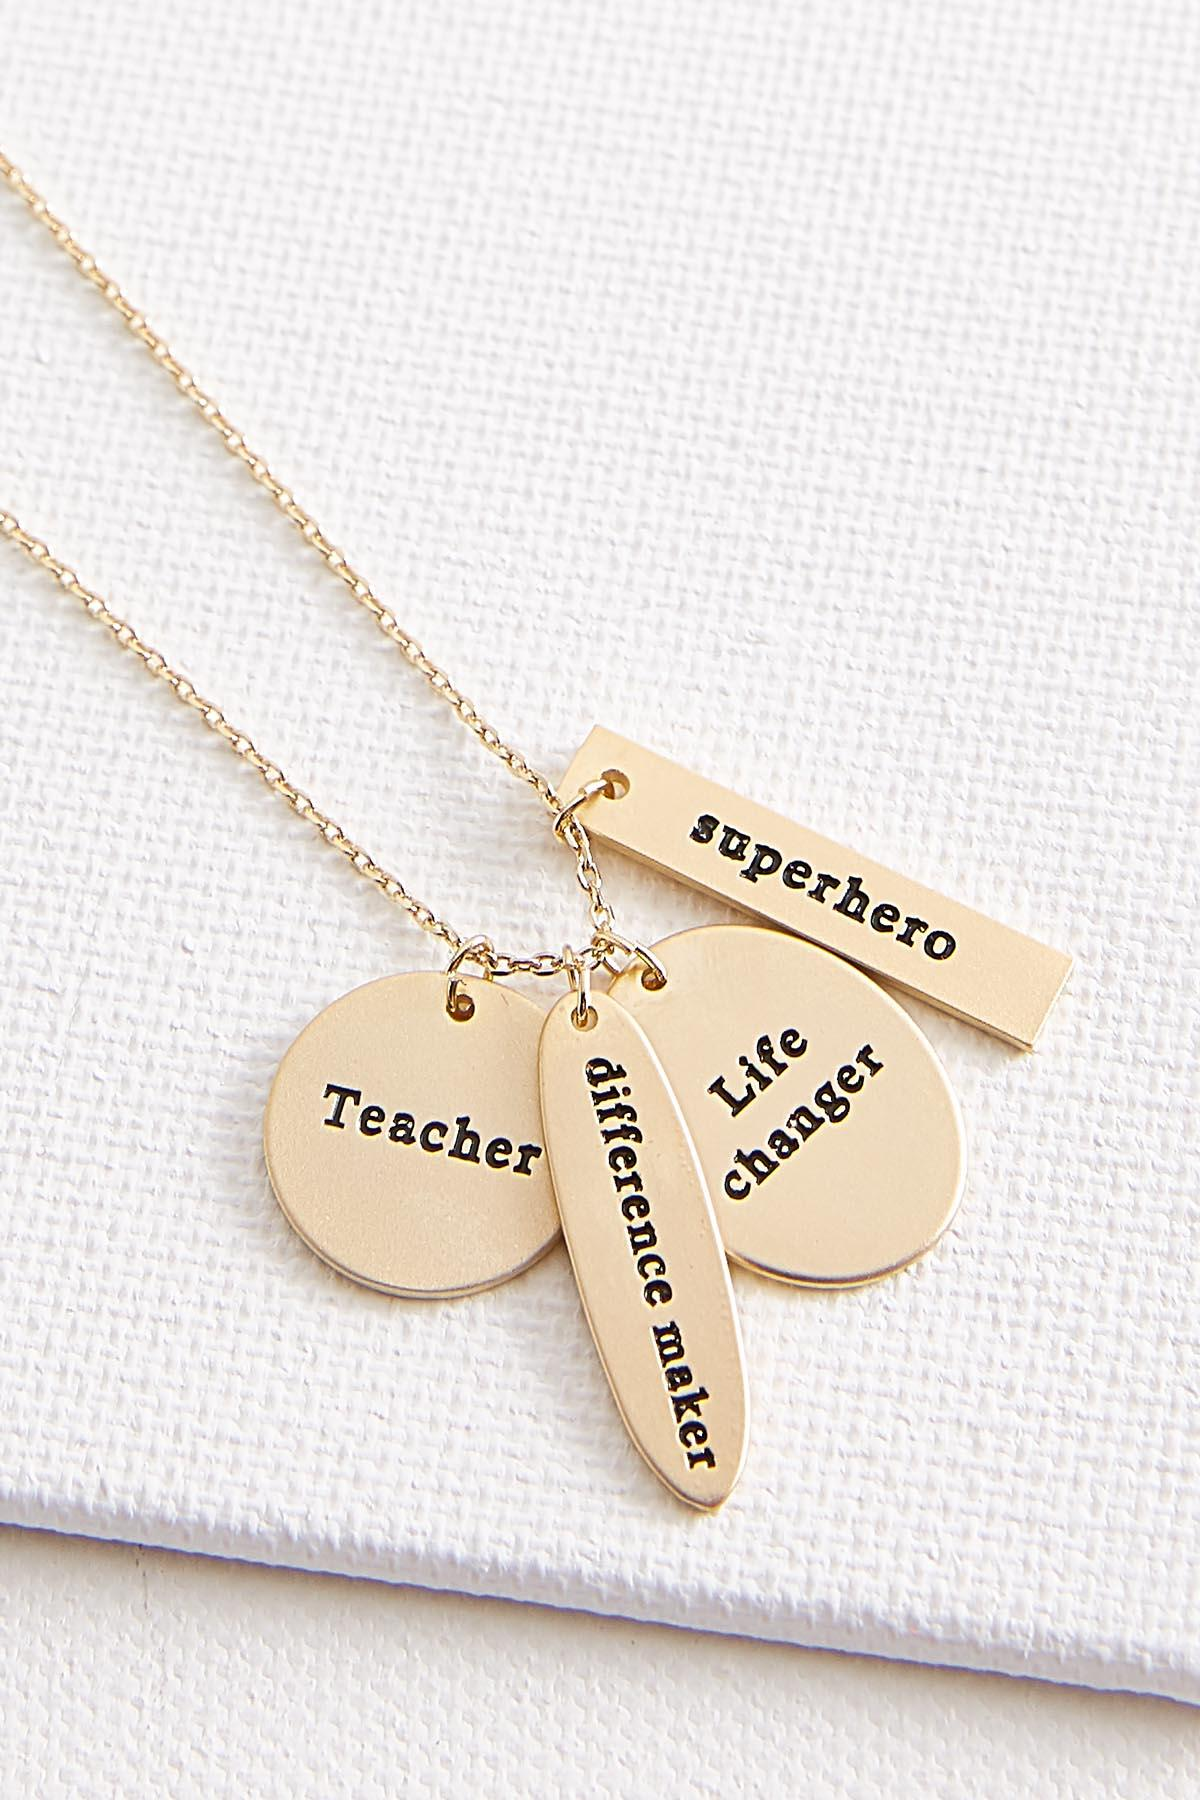 Teacher Cluster Pendant Necklace